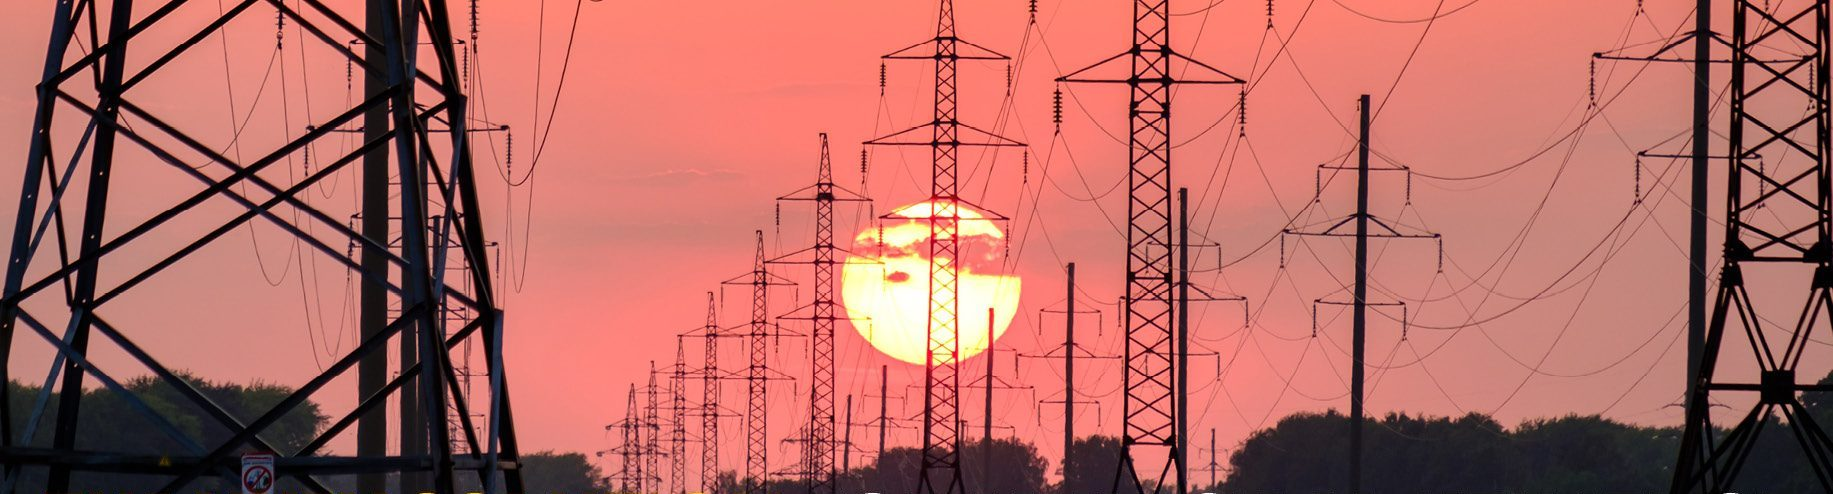 Turnkey Solution for Municipal Utilities' Clean Energy Transformation